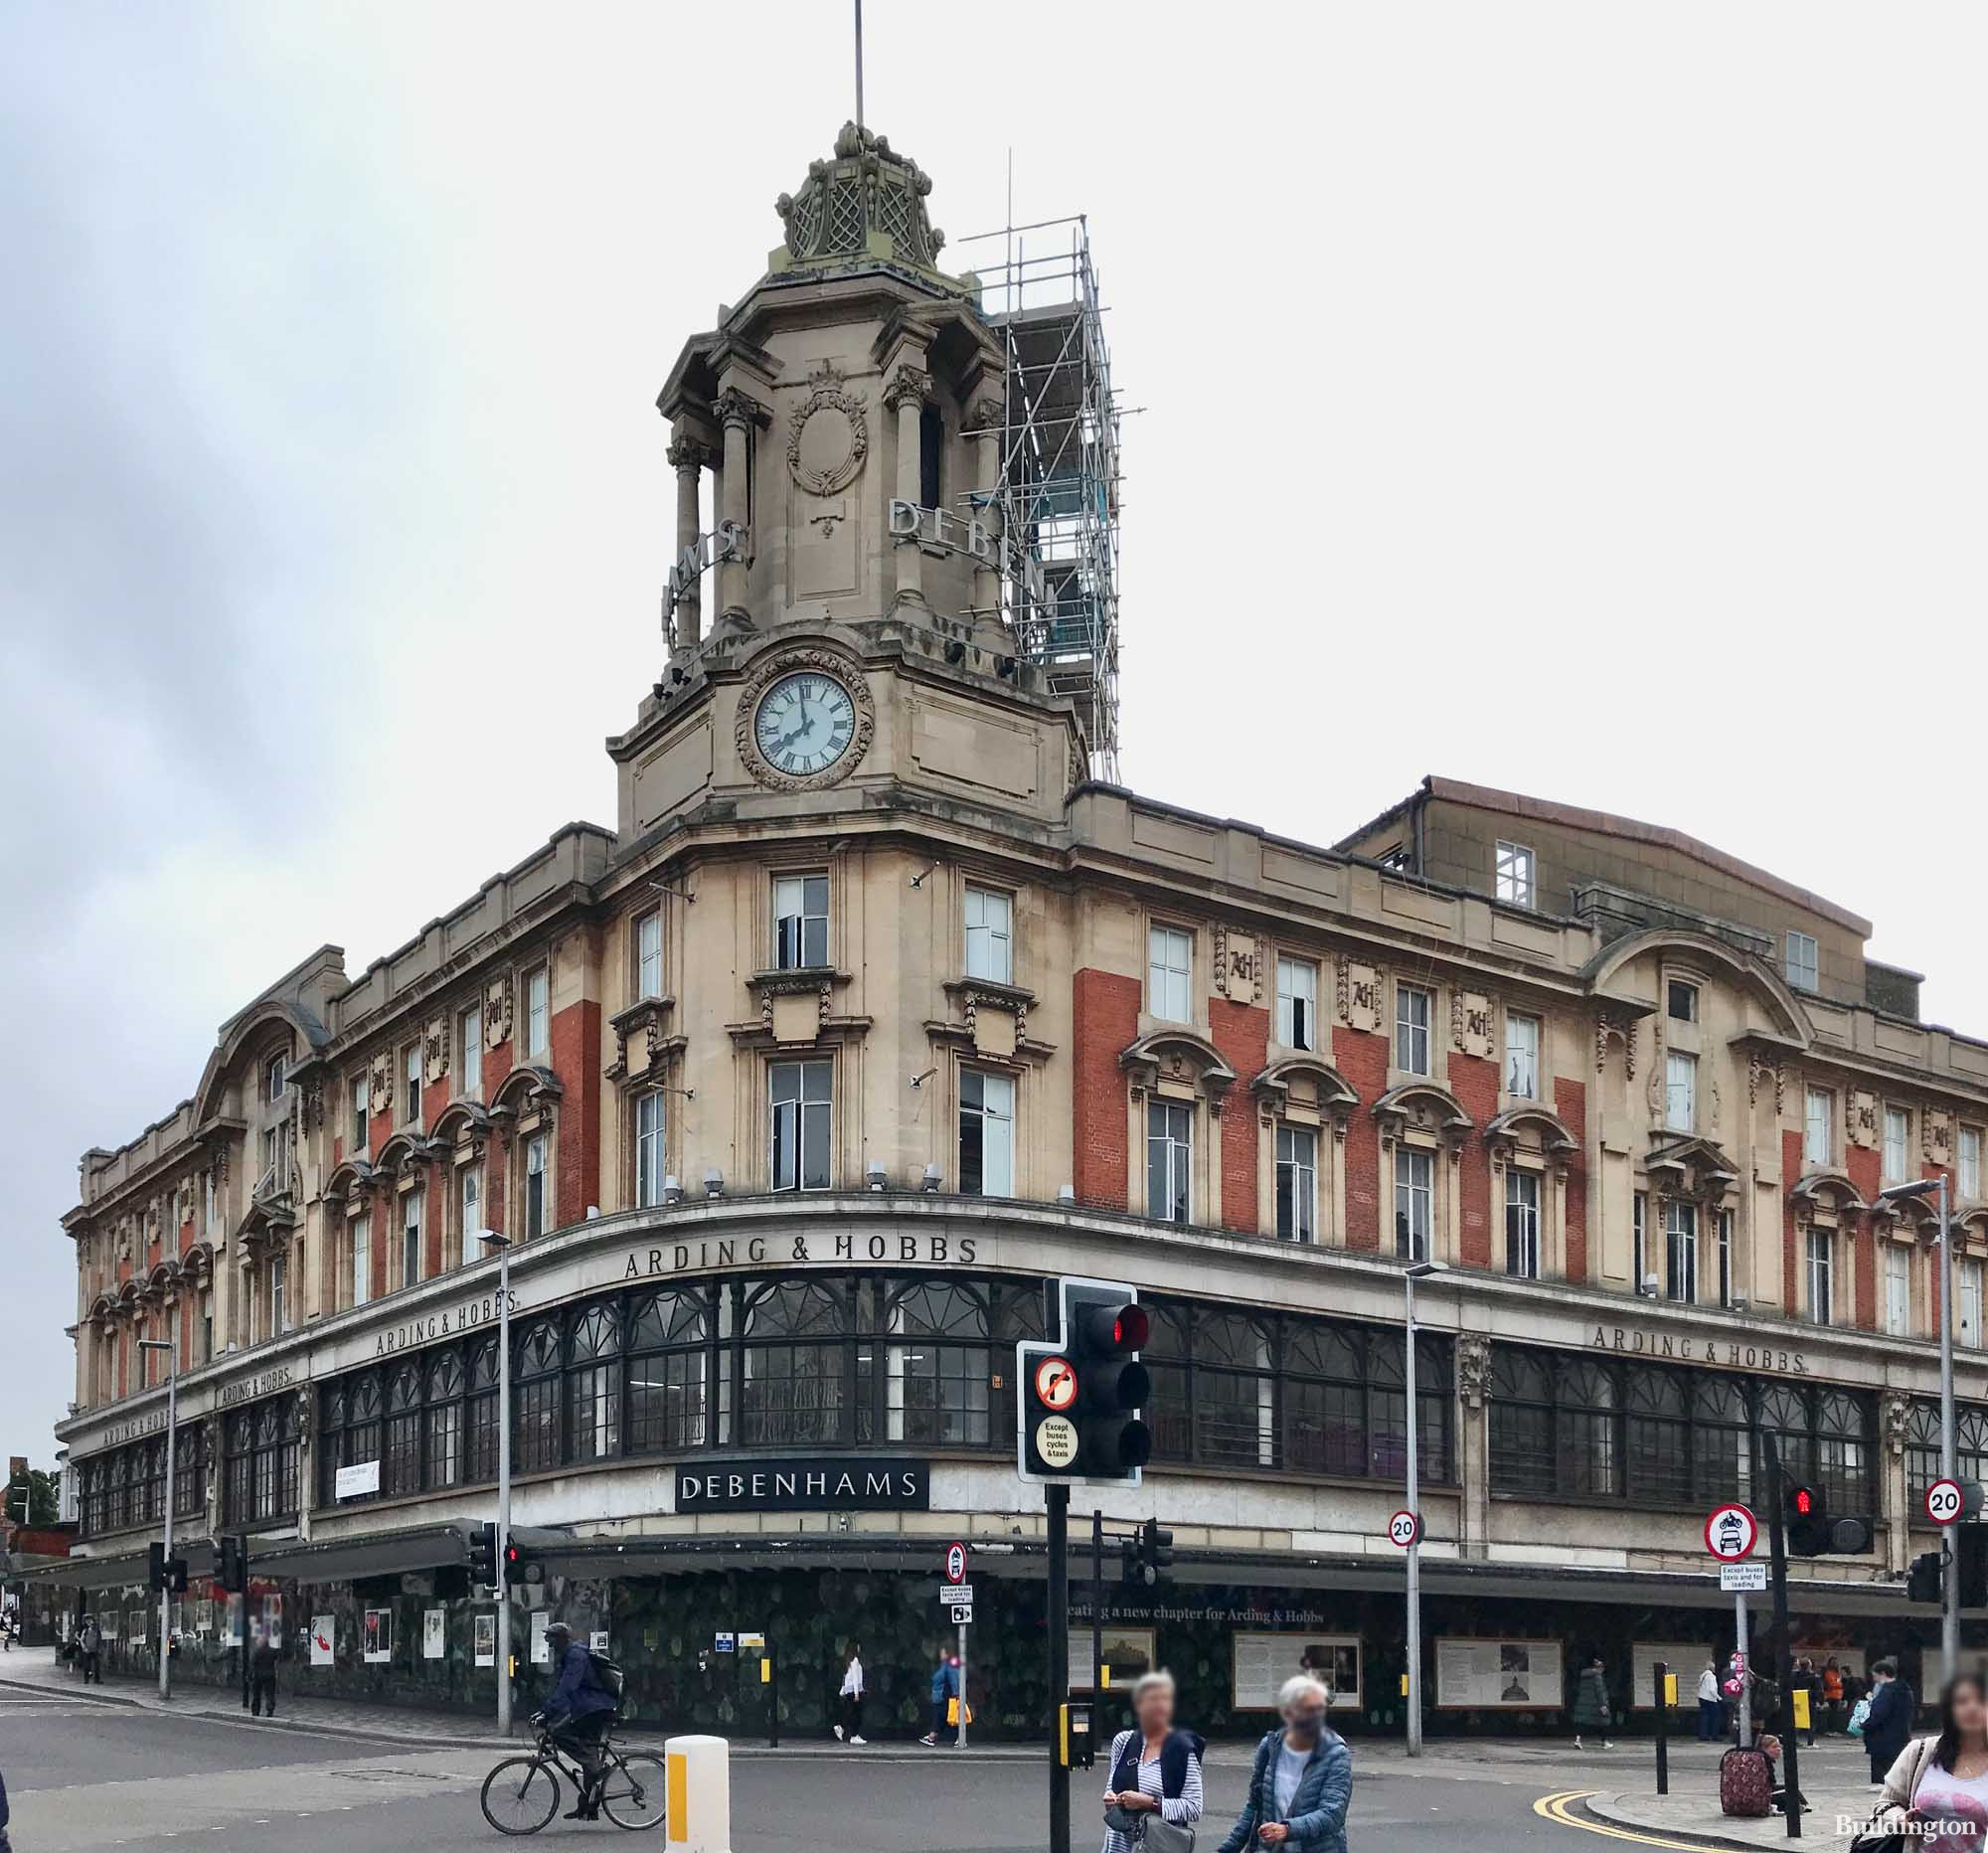 Arding & Hobbs - the former department store, most recently occupied by Debenhams, is being redeveloped to the designs of Stiff+Trevillion.